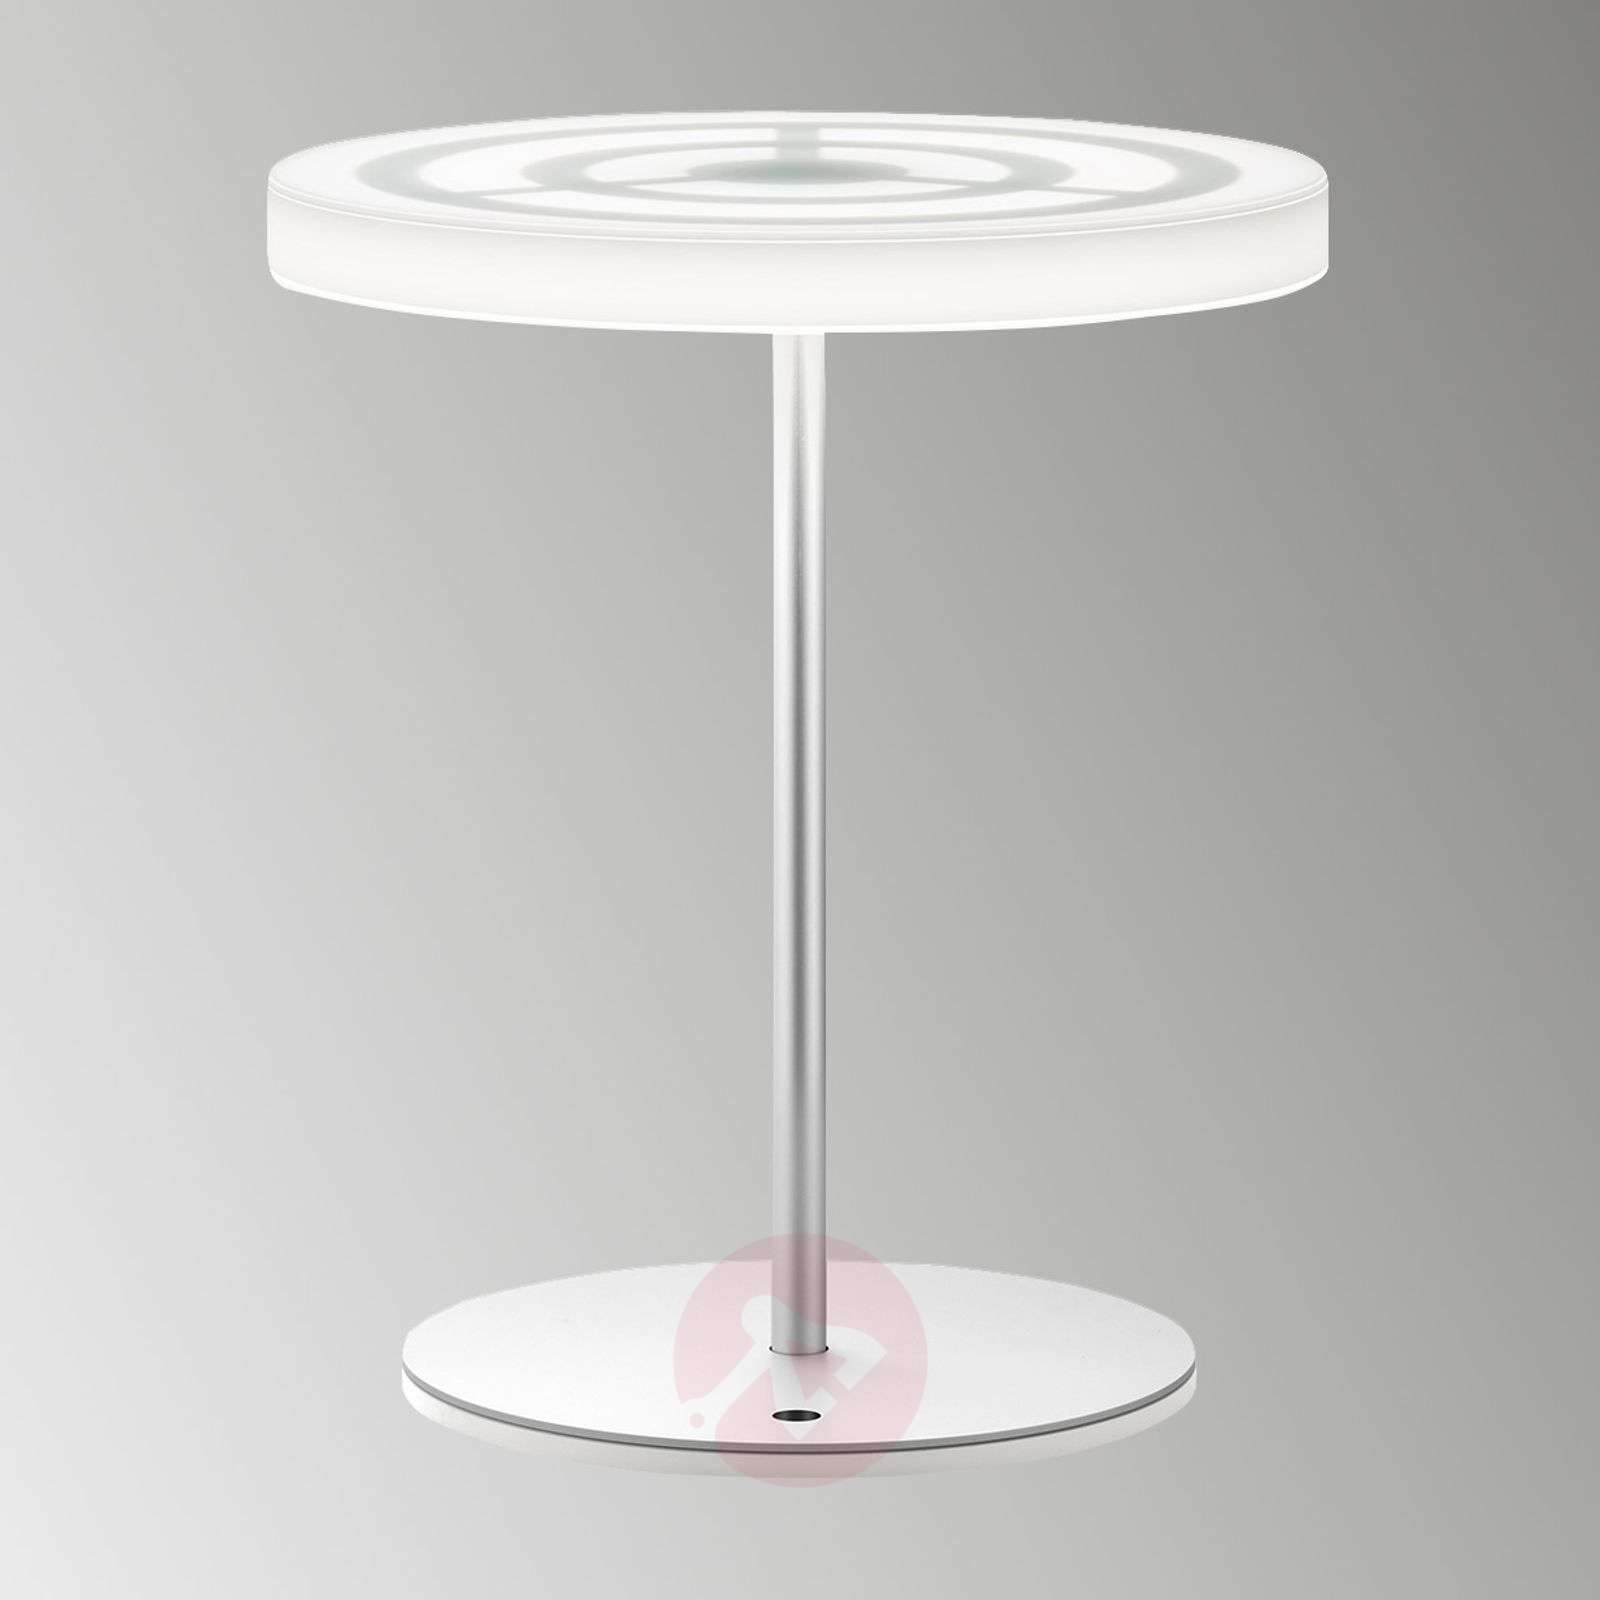 Round D30s A First Class LED Table Lamp 3060018 01 ...